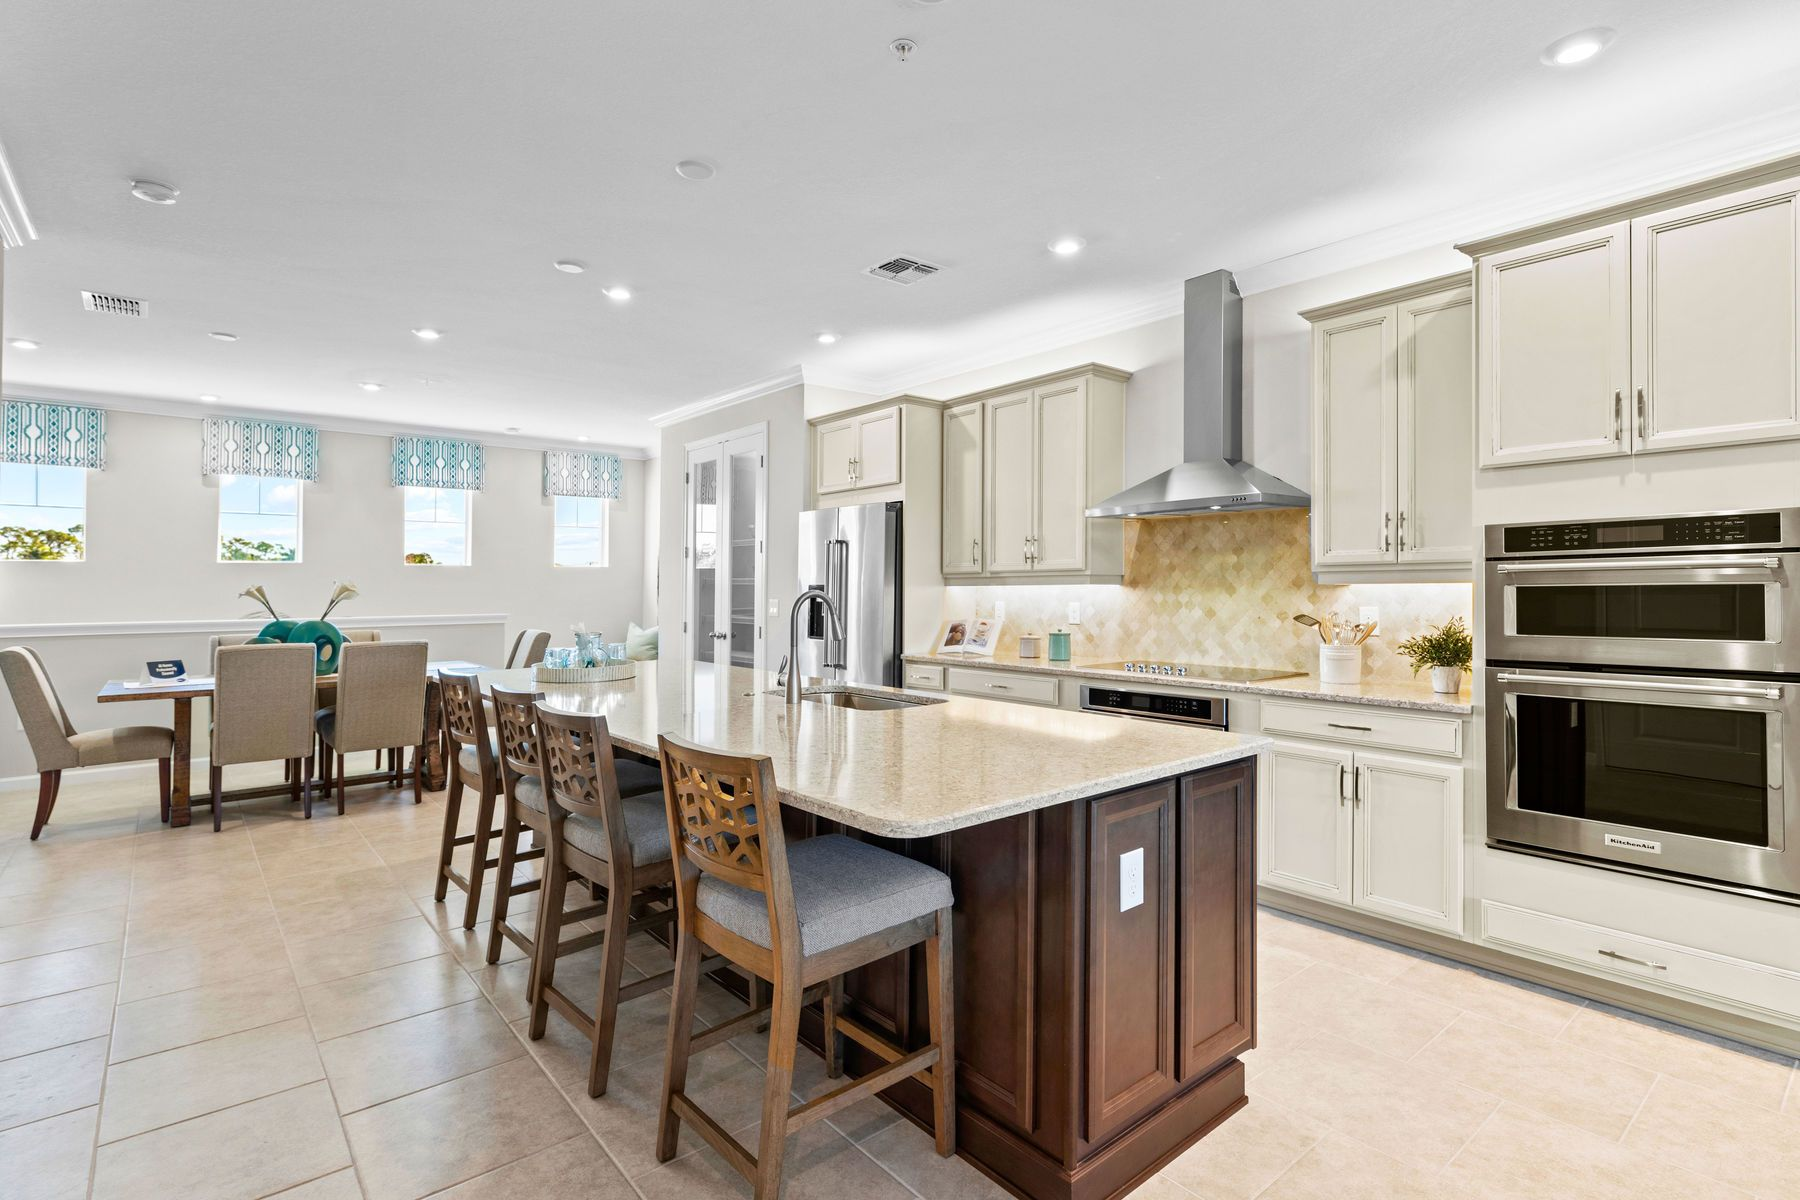 Kitchen featured in the Seabright By Mattamy Homes in Naples, FL